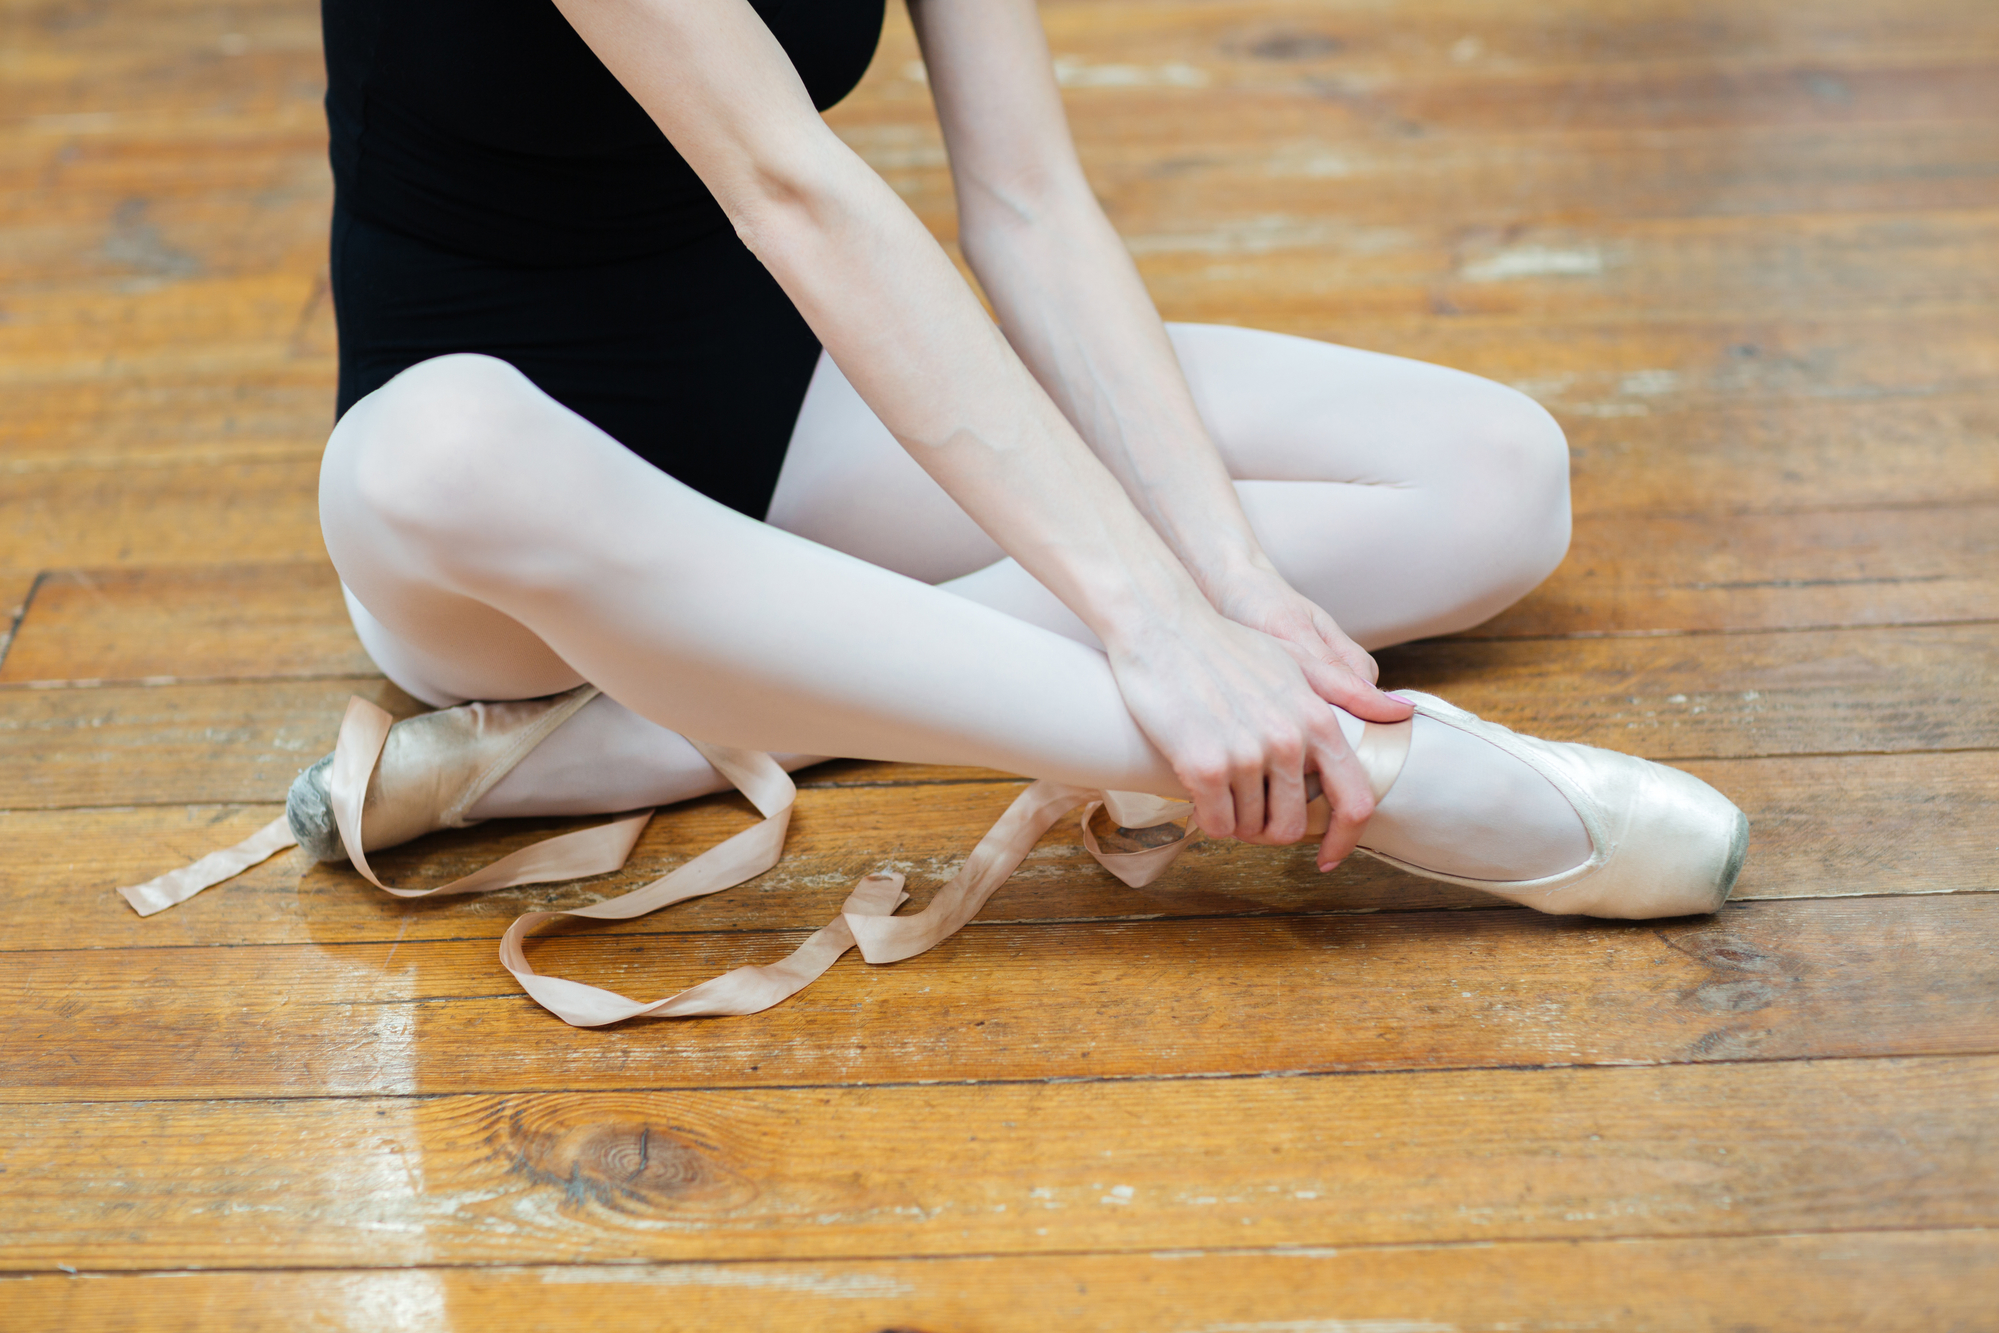 Cropped image of a ballerina in pointes having pain in ankle.